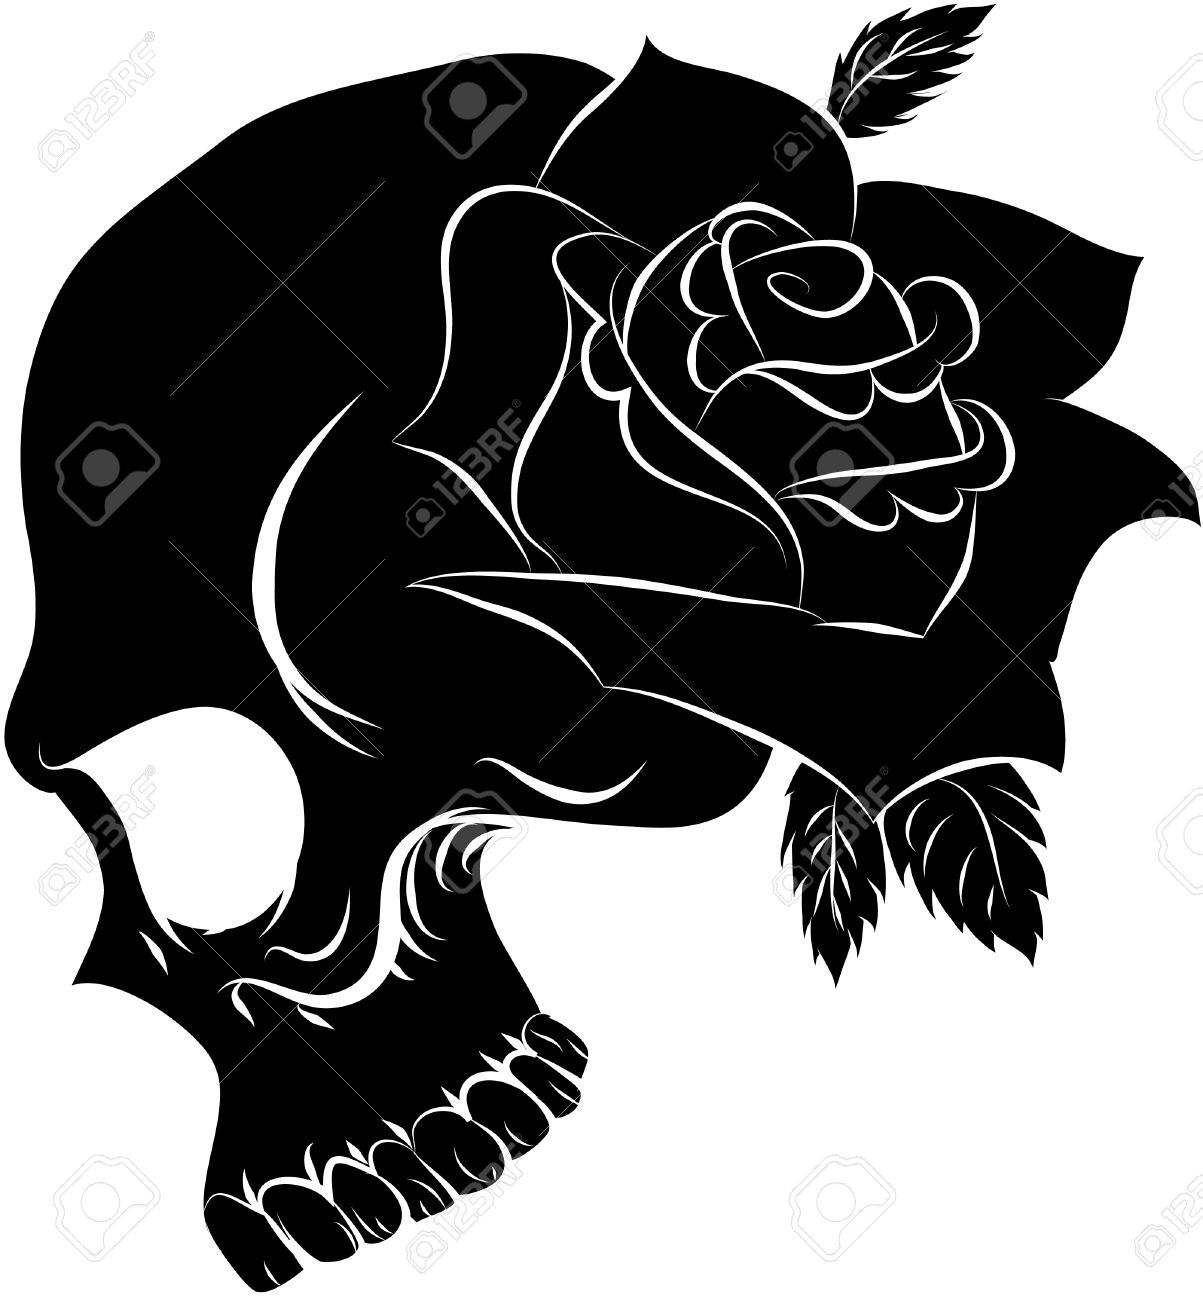 Skulls And Roses Drawings Easy Google Search To Draw Drawings